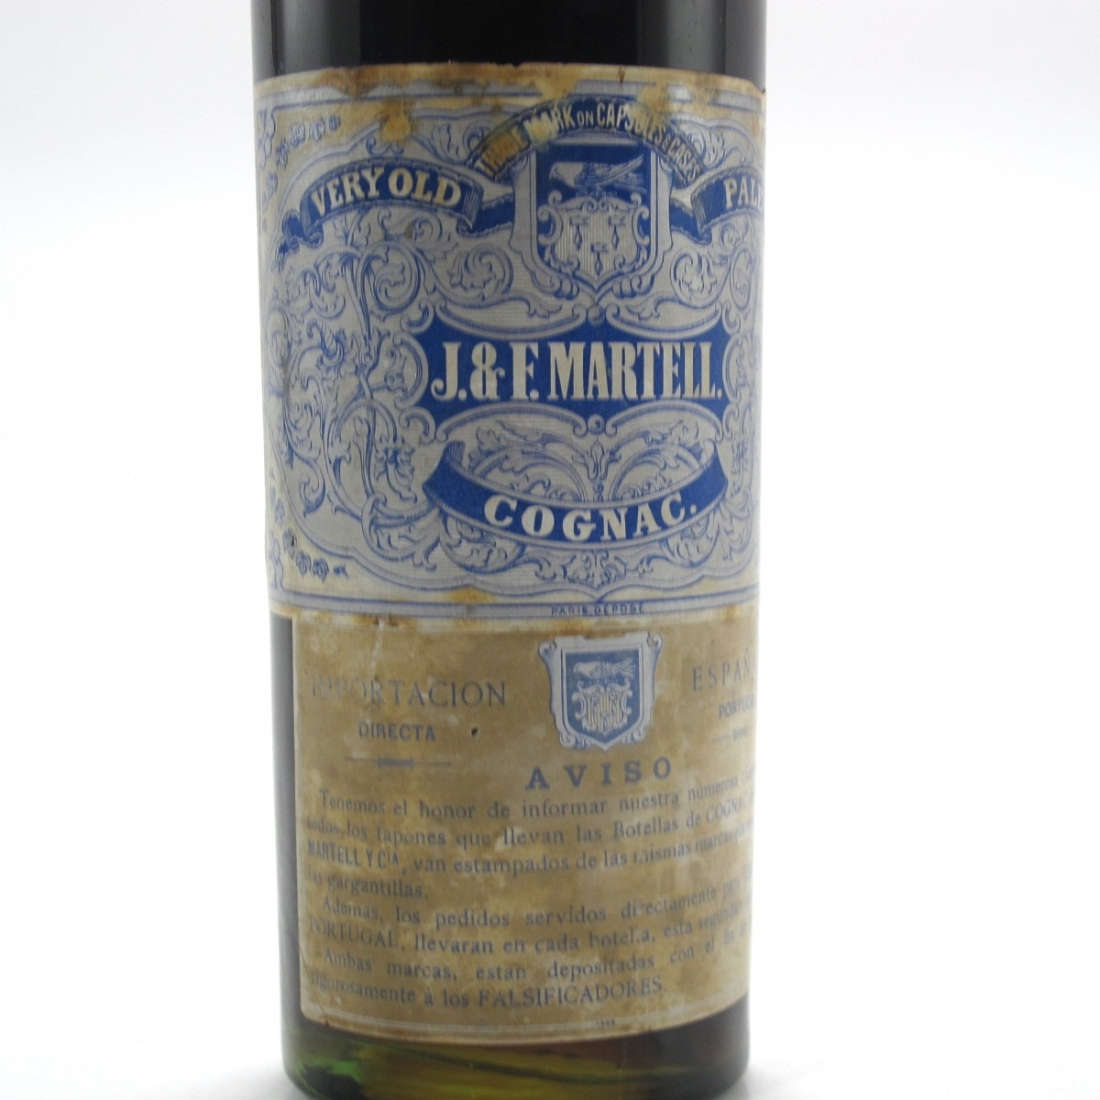 Martell 3 Star Very Old Pale Cognac circa 1930s/40s